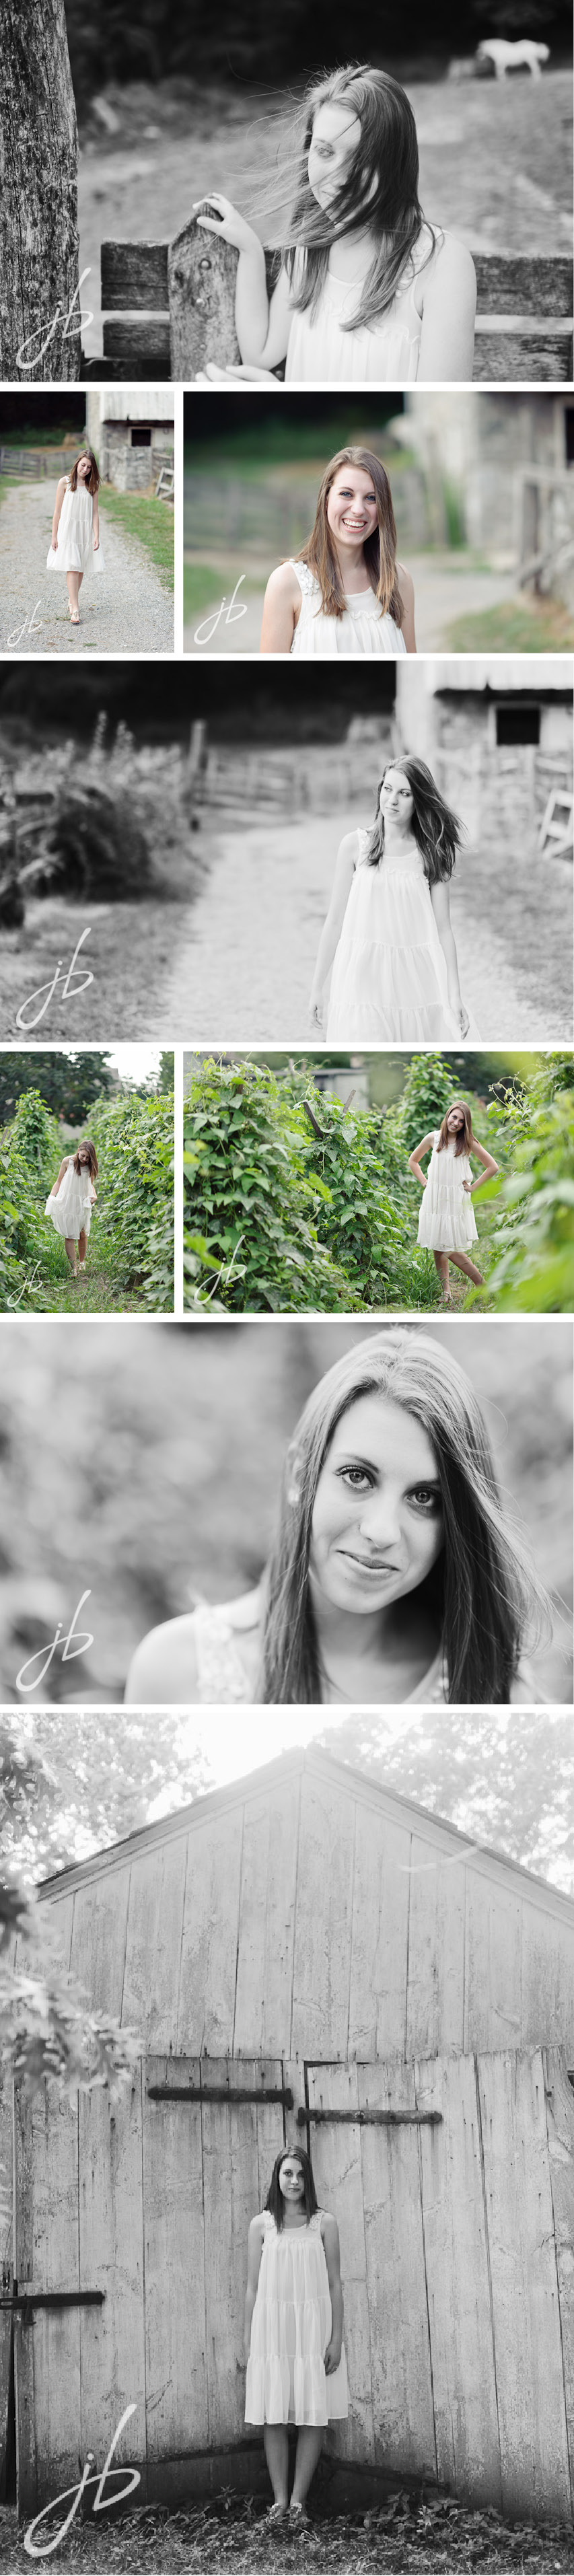 Lancaster PA Senior portrait Photography by Jeremy Bischoff Photography 001